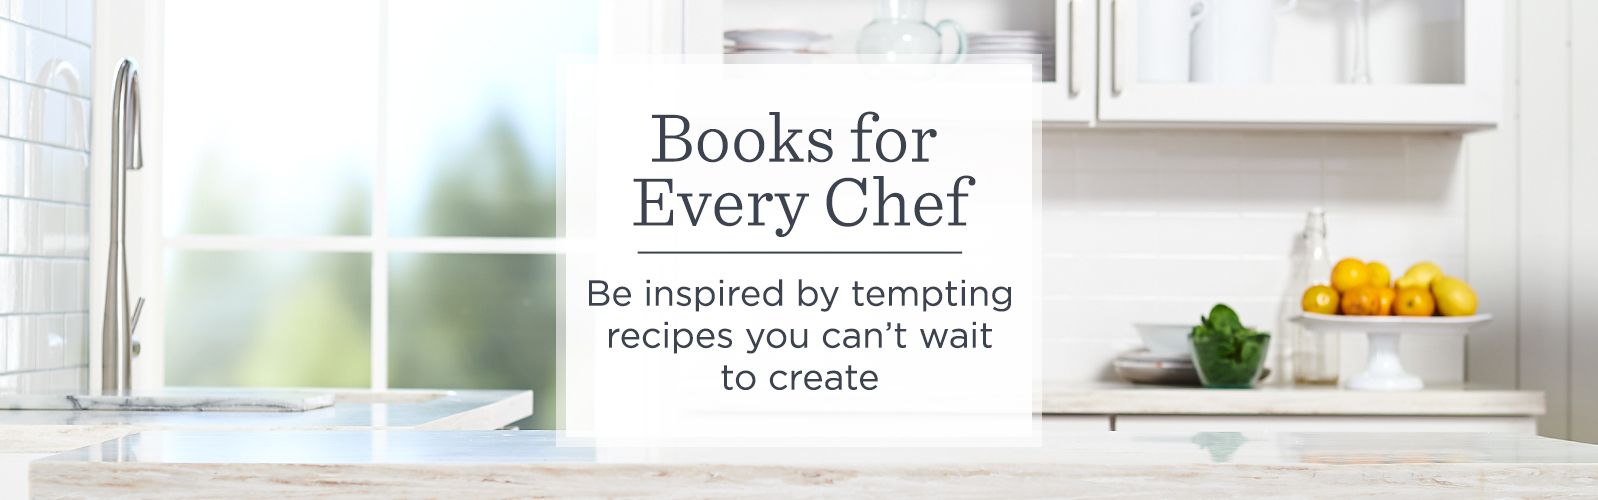 qvc.com shopping kitchen square island cookbooks tools qvc com books for every chef be inspired by tempting recipes you can t wait to